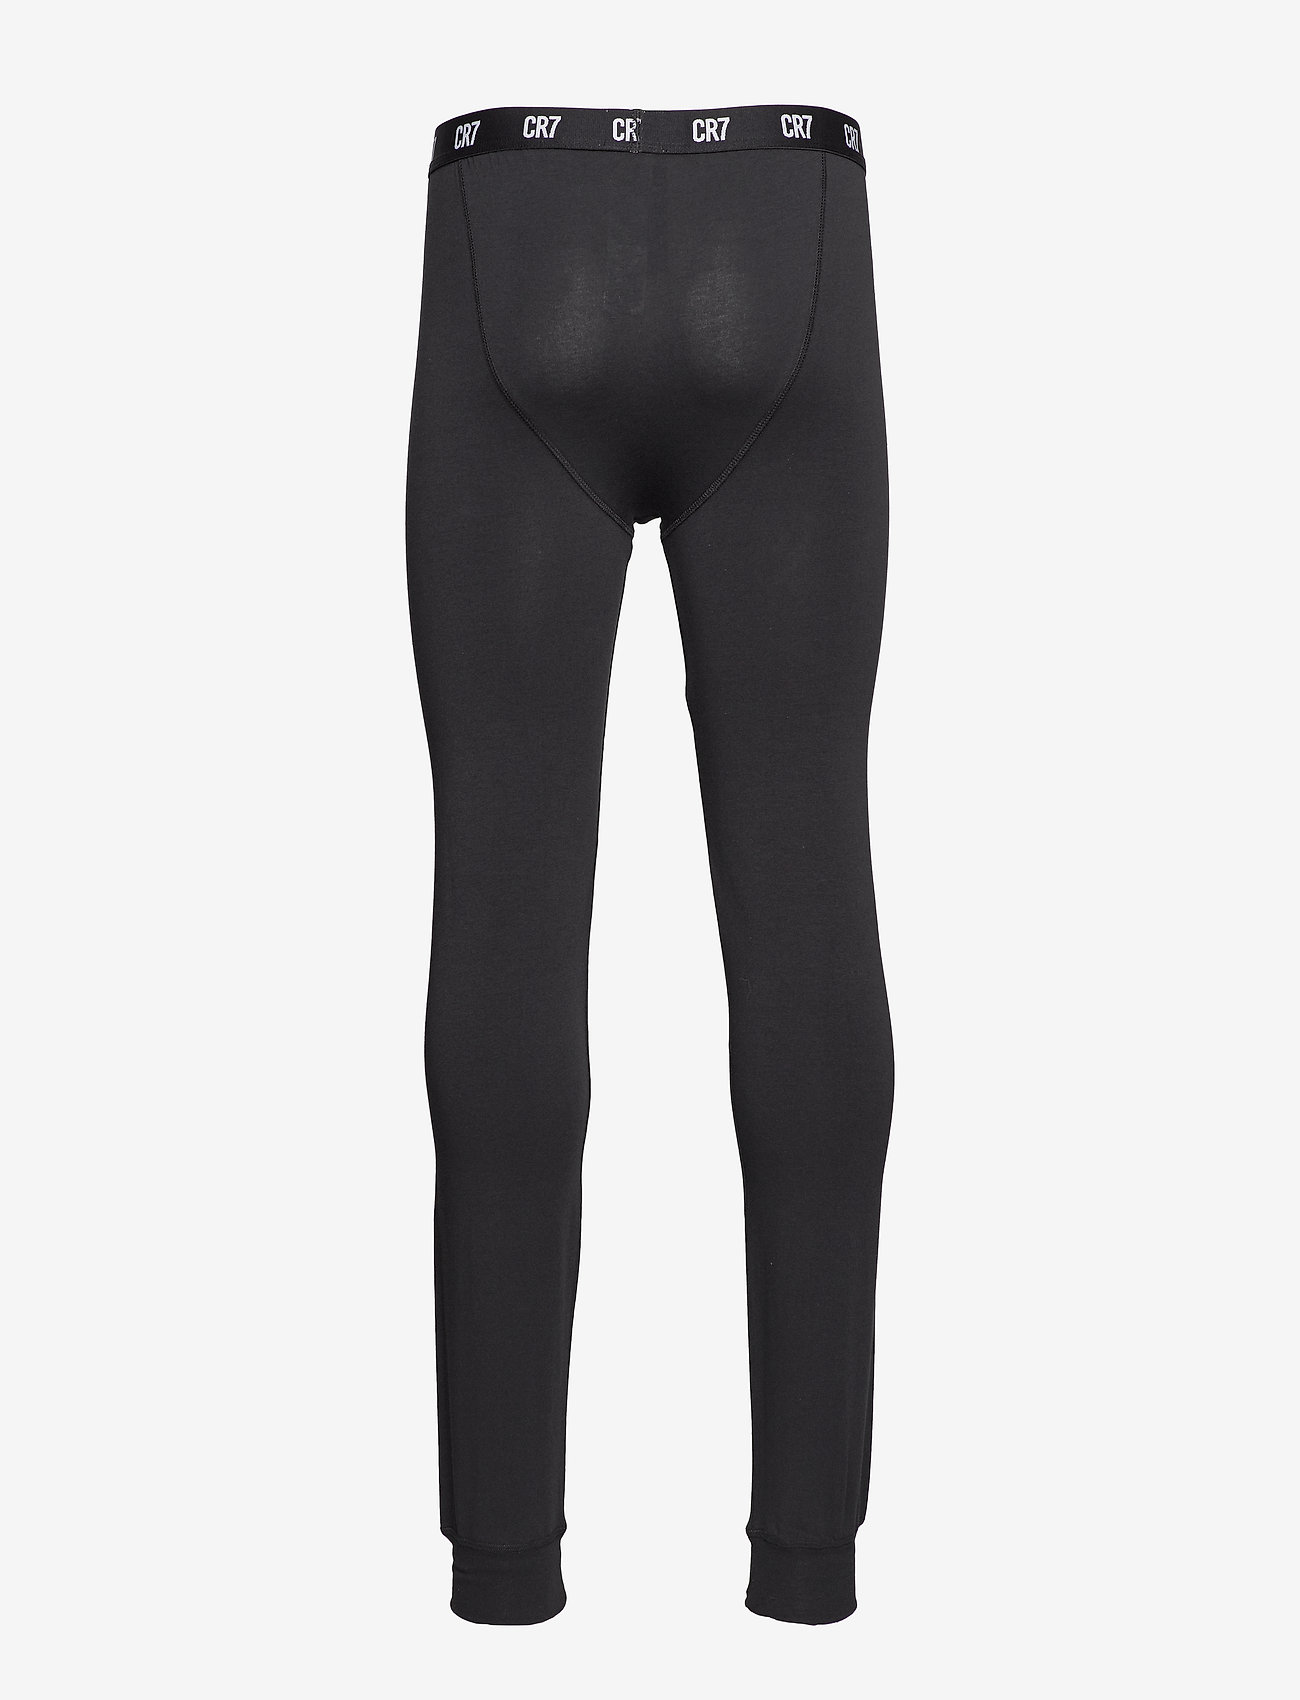 CR7 CR7 Fashion, Long Johns - Nattøy BLACK - Menn Klær